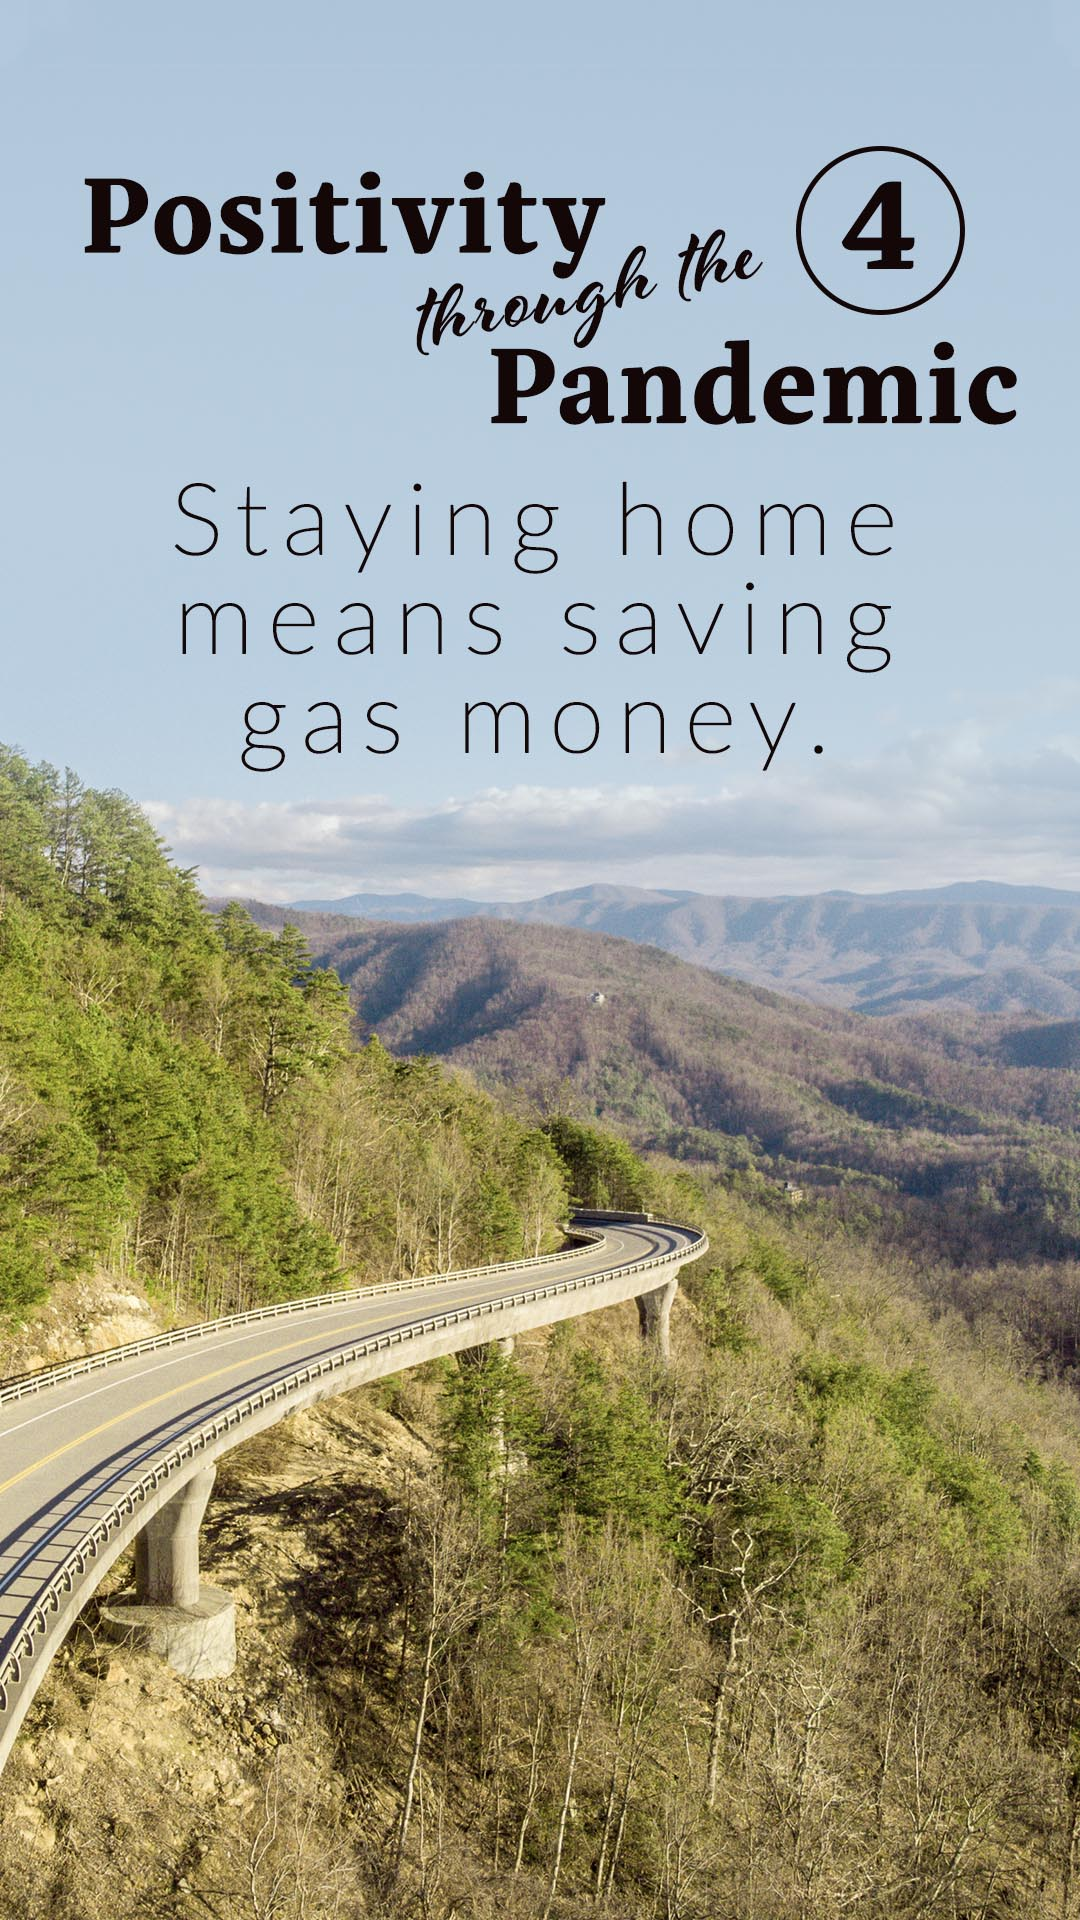 Positivity through the Pandemic #4: Staying home means saving gas money